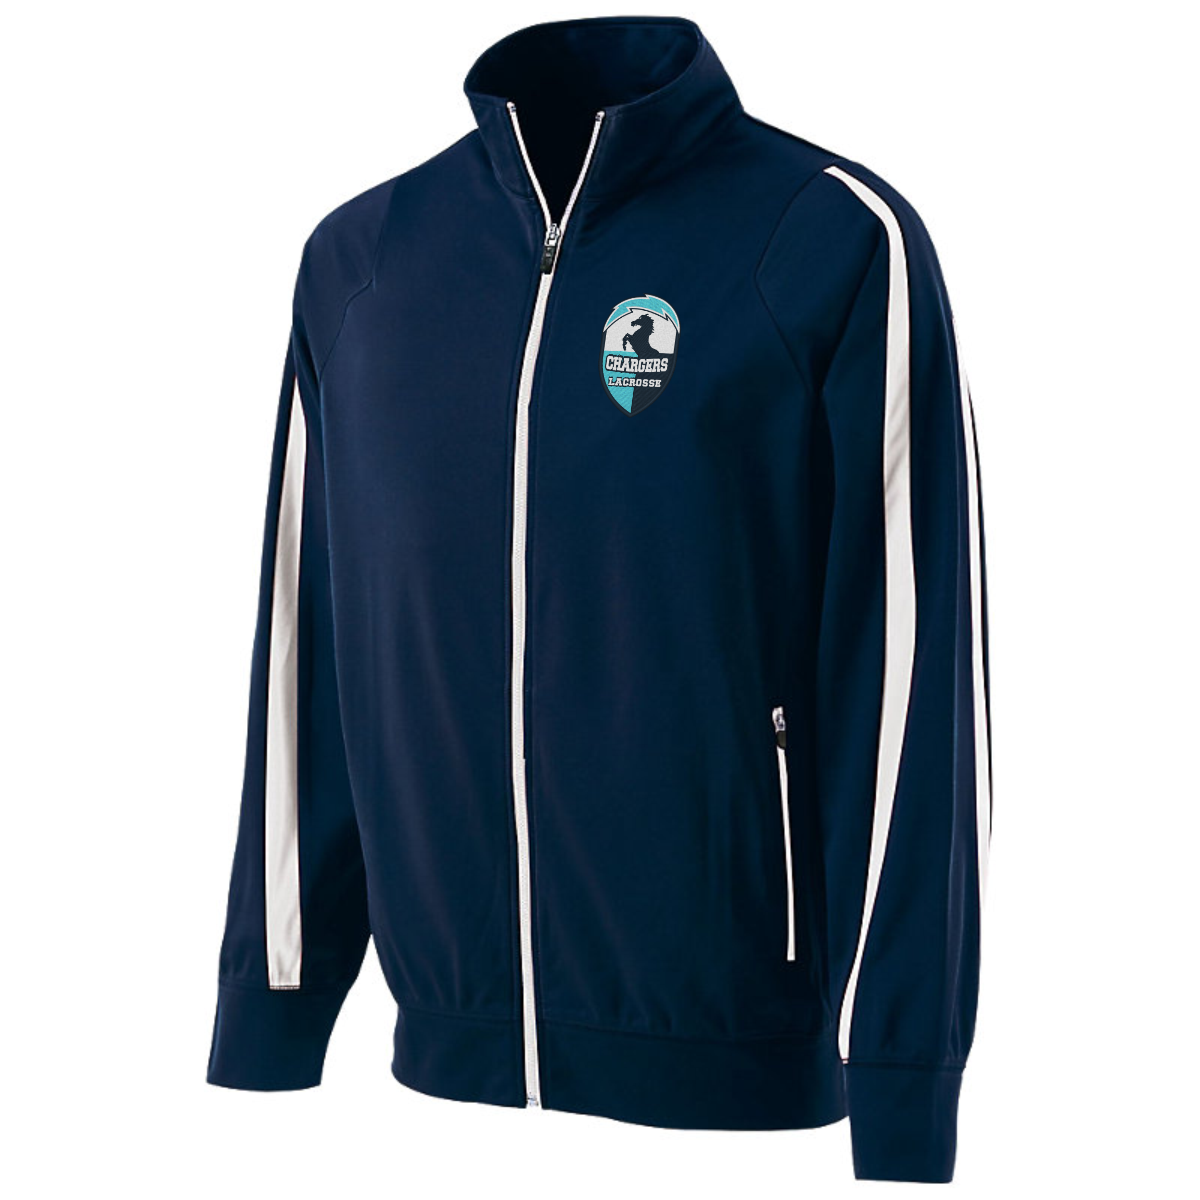 Holloway Youth, Ladies, and Adult Determination Jacket with embroidered logo